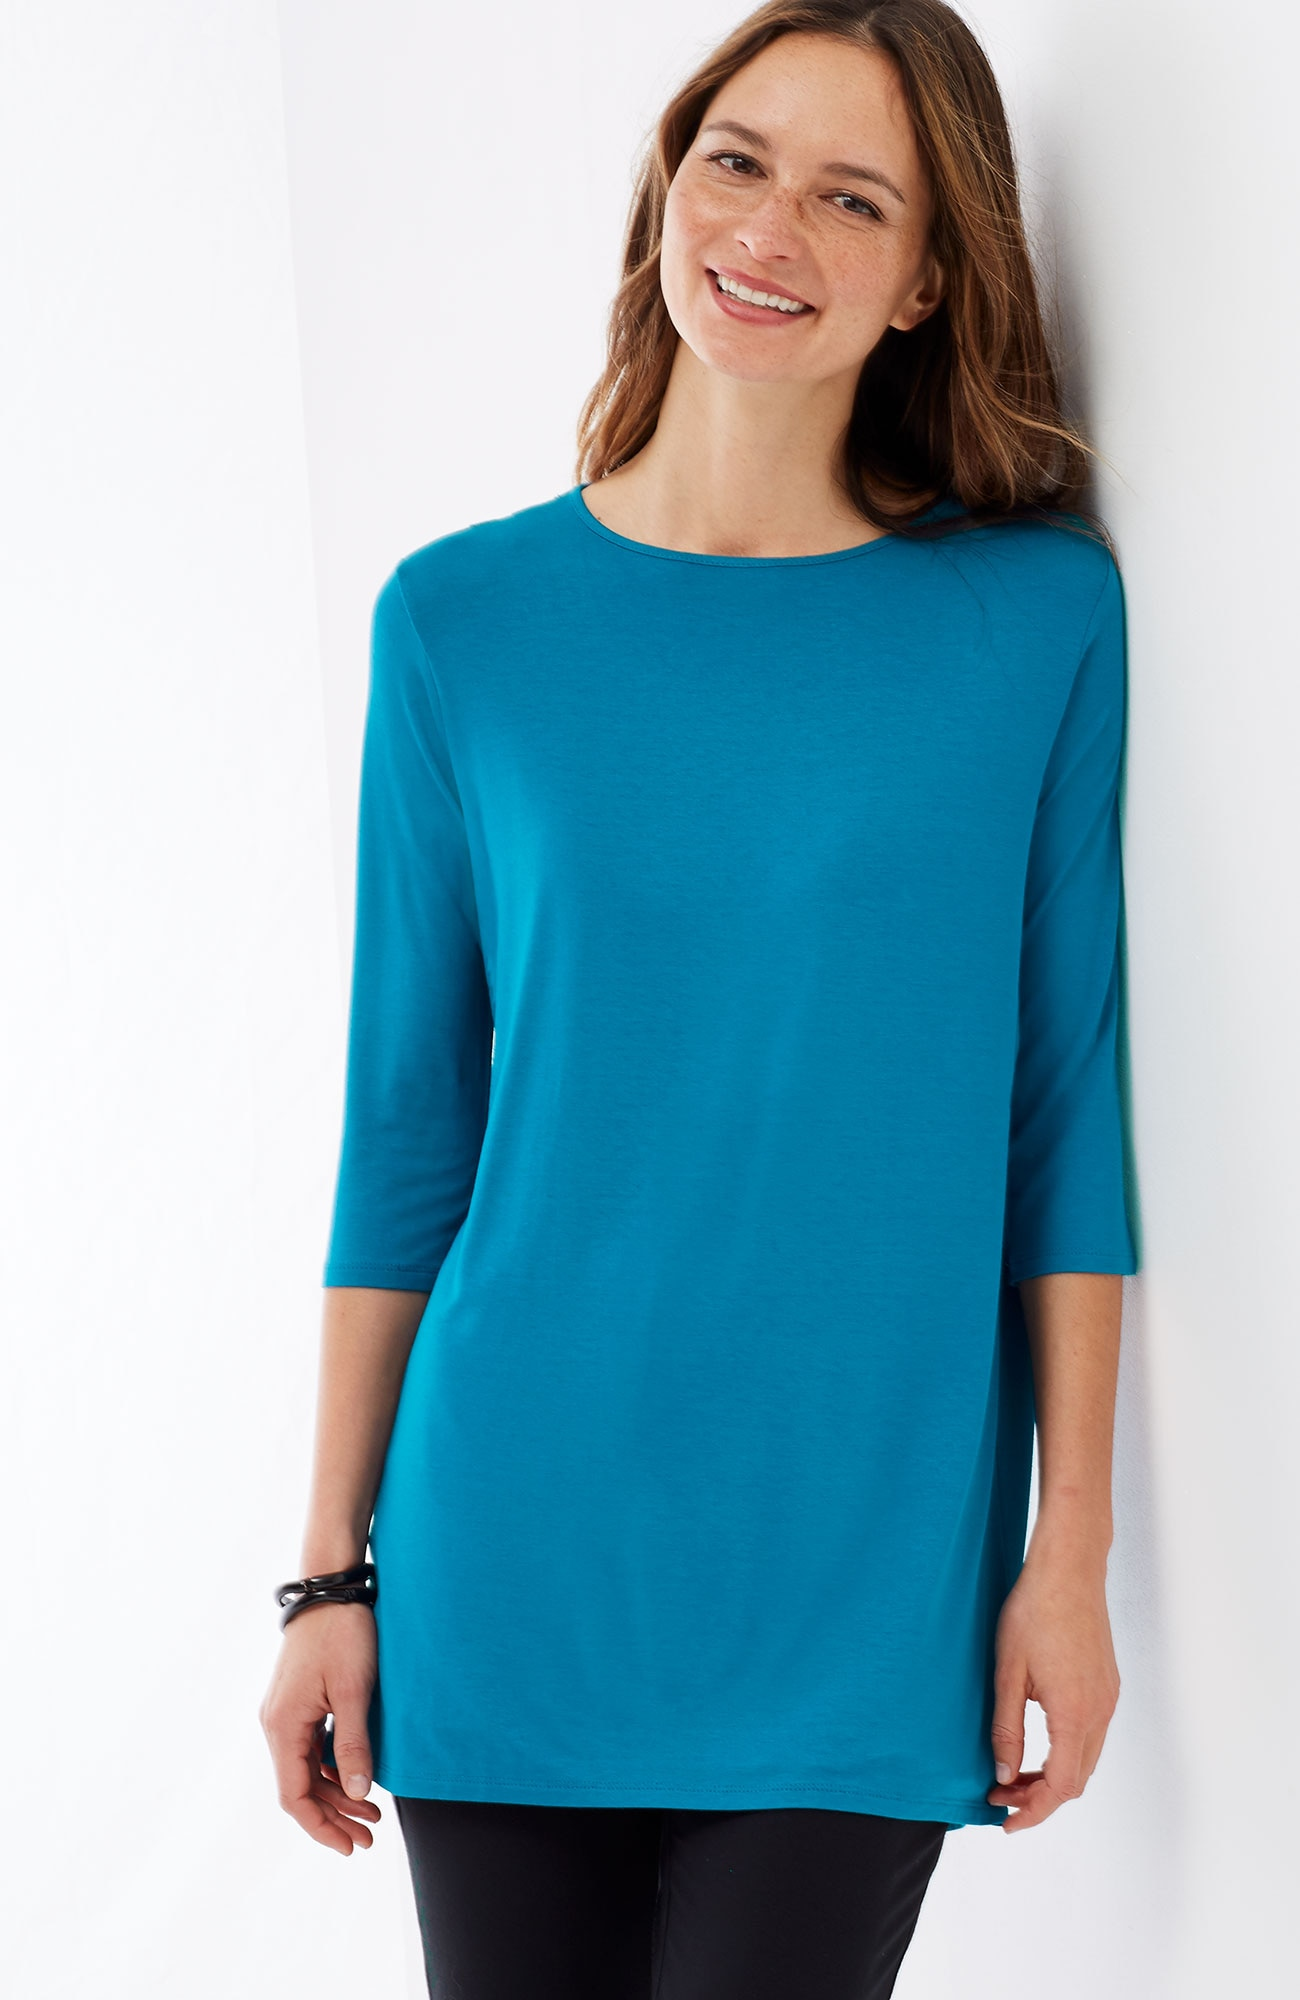 Wearever pleated-back elliptical tunic